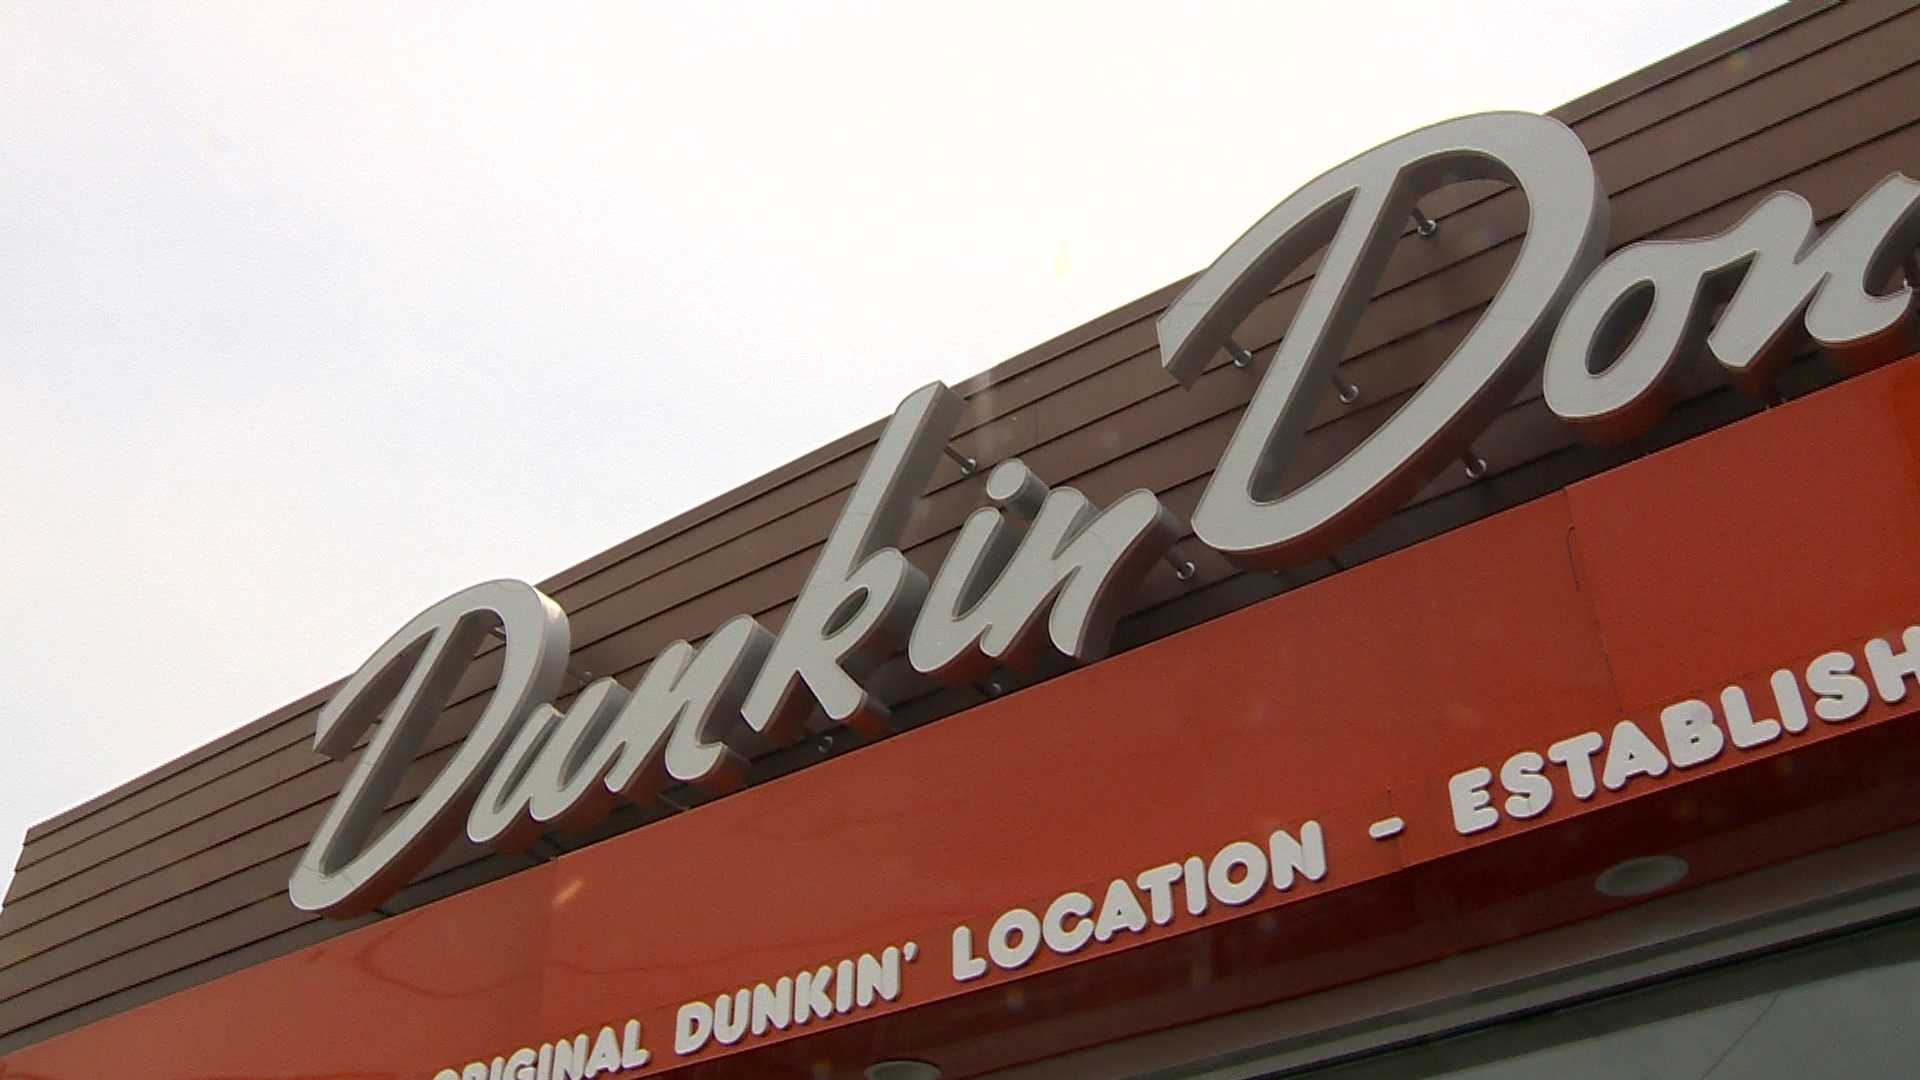 Dunkin Donuts Original Location in Quincy